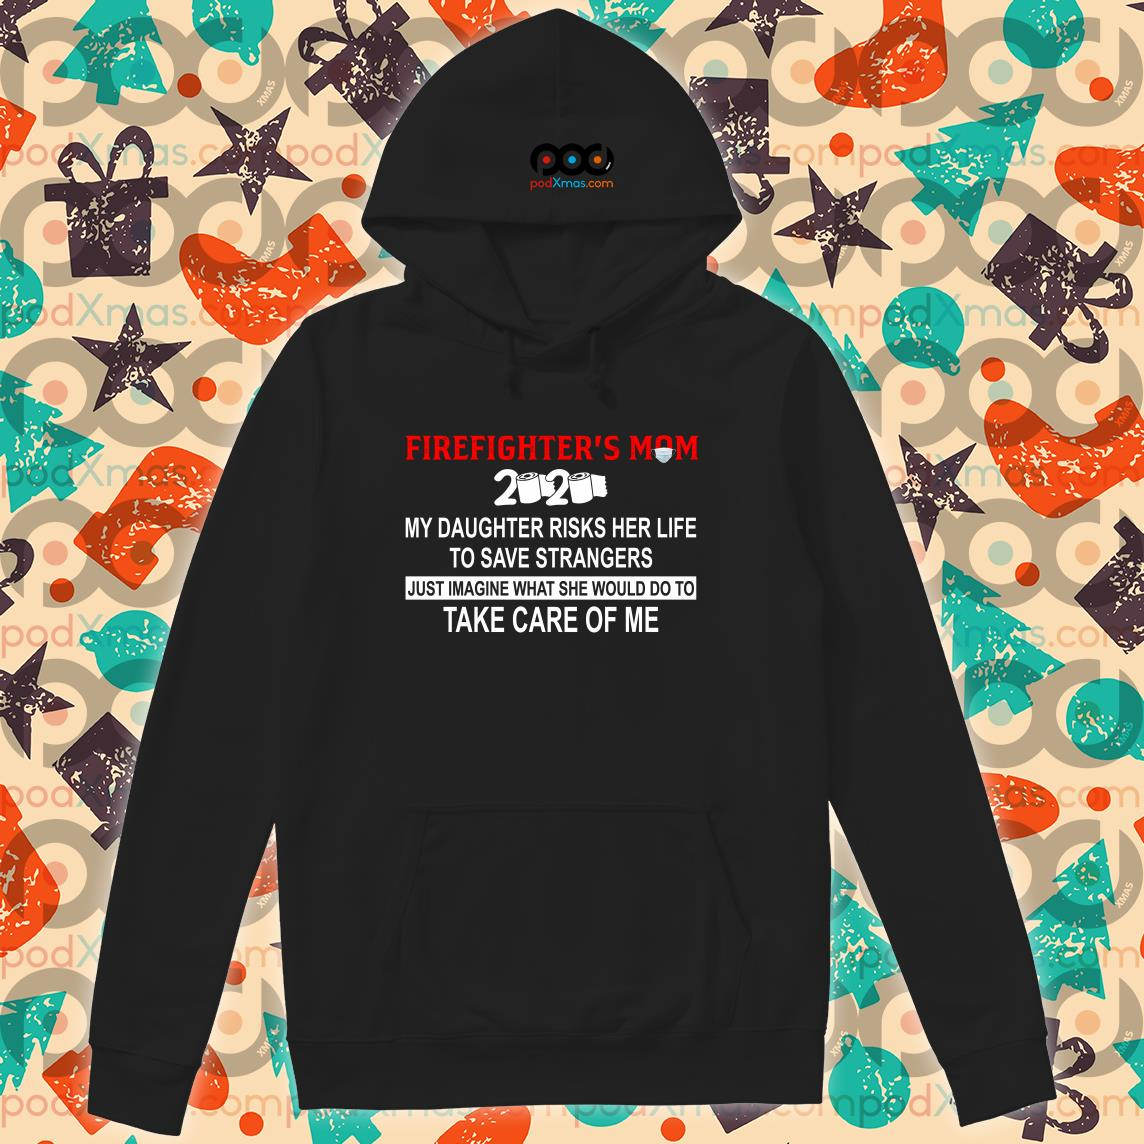 Firefighter's Daughter 2020 my daughter risks her life take care of me T-hoodieFirefighter's Mom 2020 my daughter risks her life take care of me T-hoodie